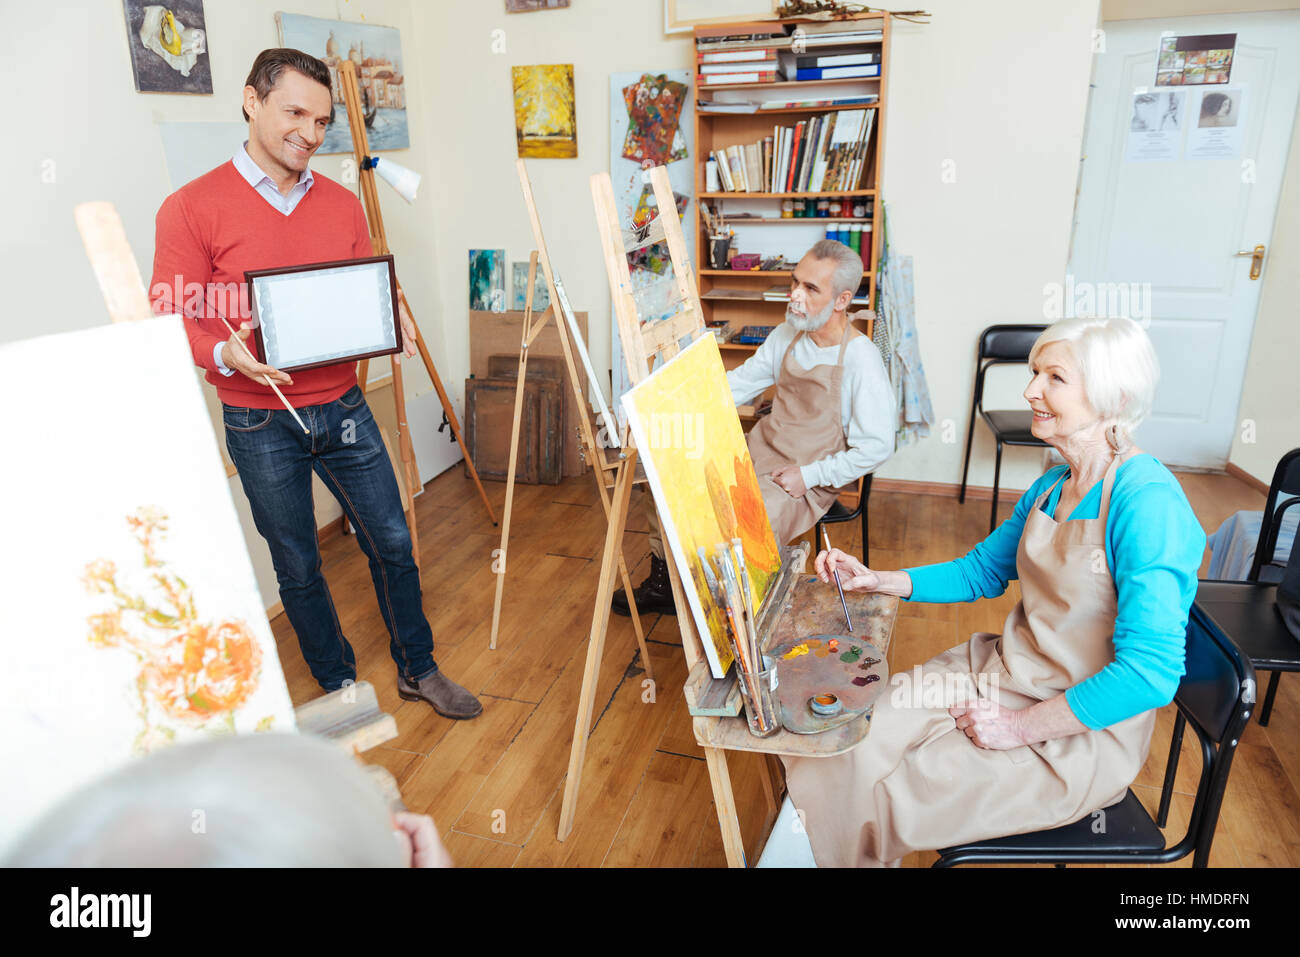 Young man demonstrating a painters diploma - Stock Image